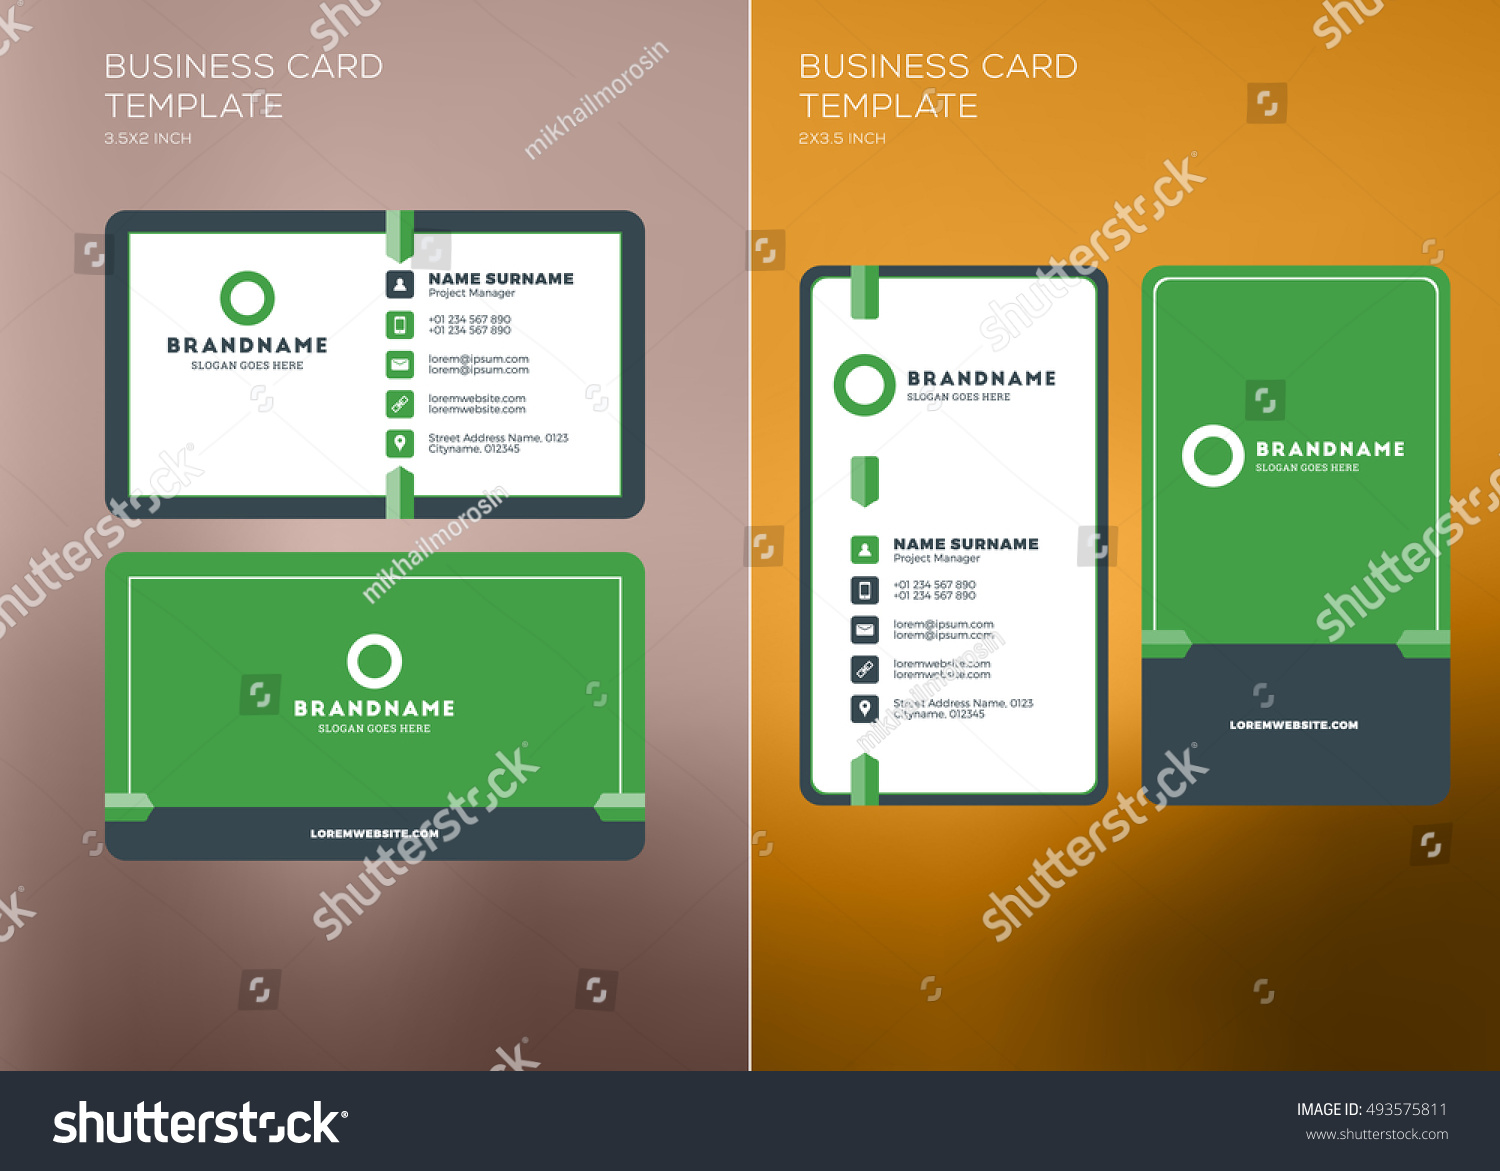 Corporate business card print template personal stock vector corporate business card print template personal visiting card with company logo vertical and horizontal cheaphphosting Image collections